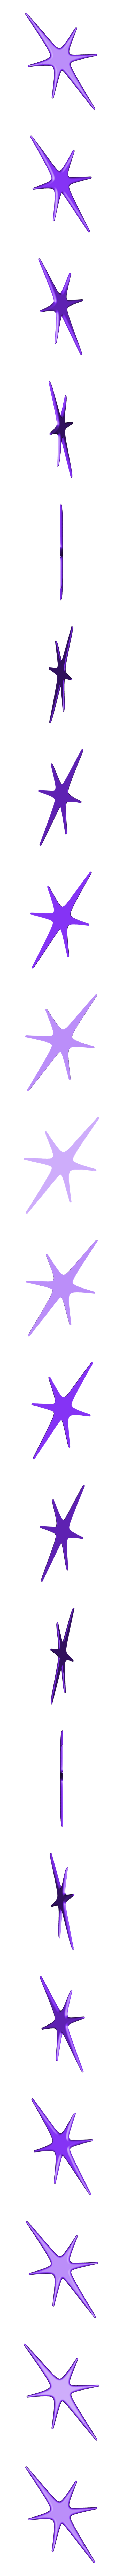 Space Decals_ Star C.stl Download free STL file Space Decals • 3D printing template, Hom3d